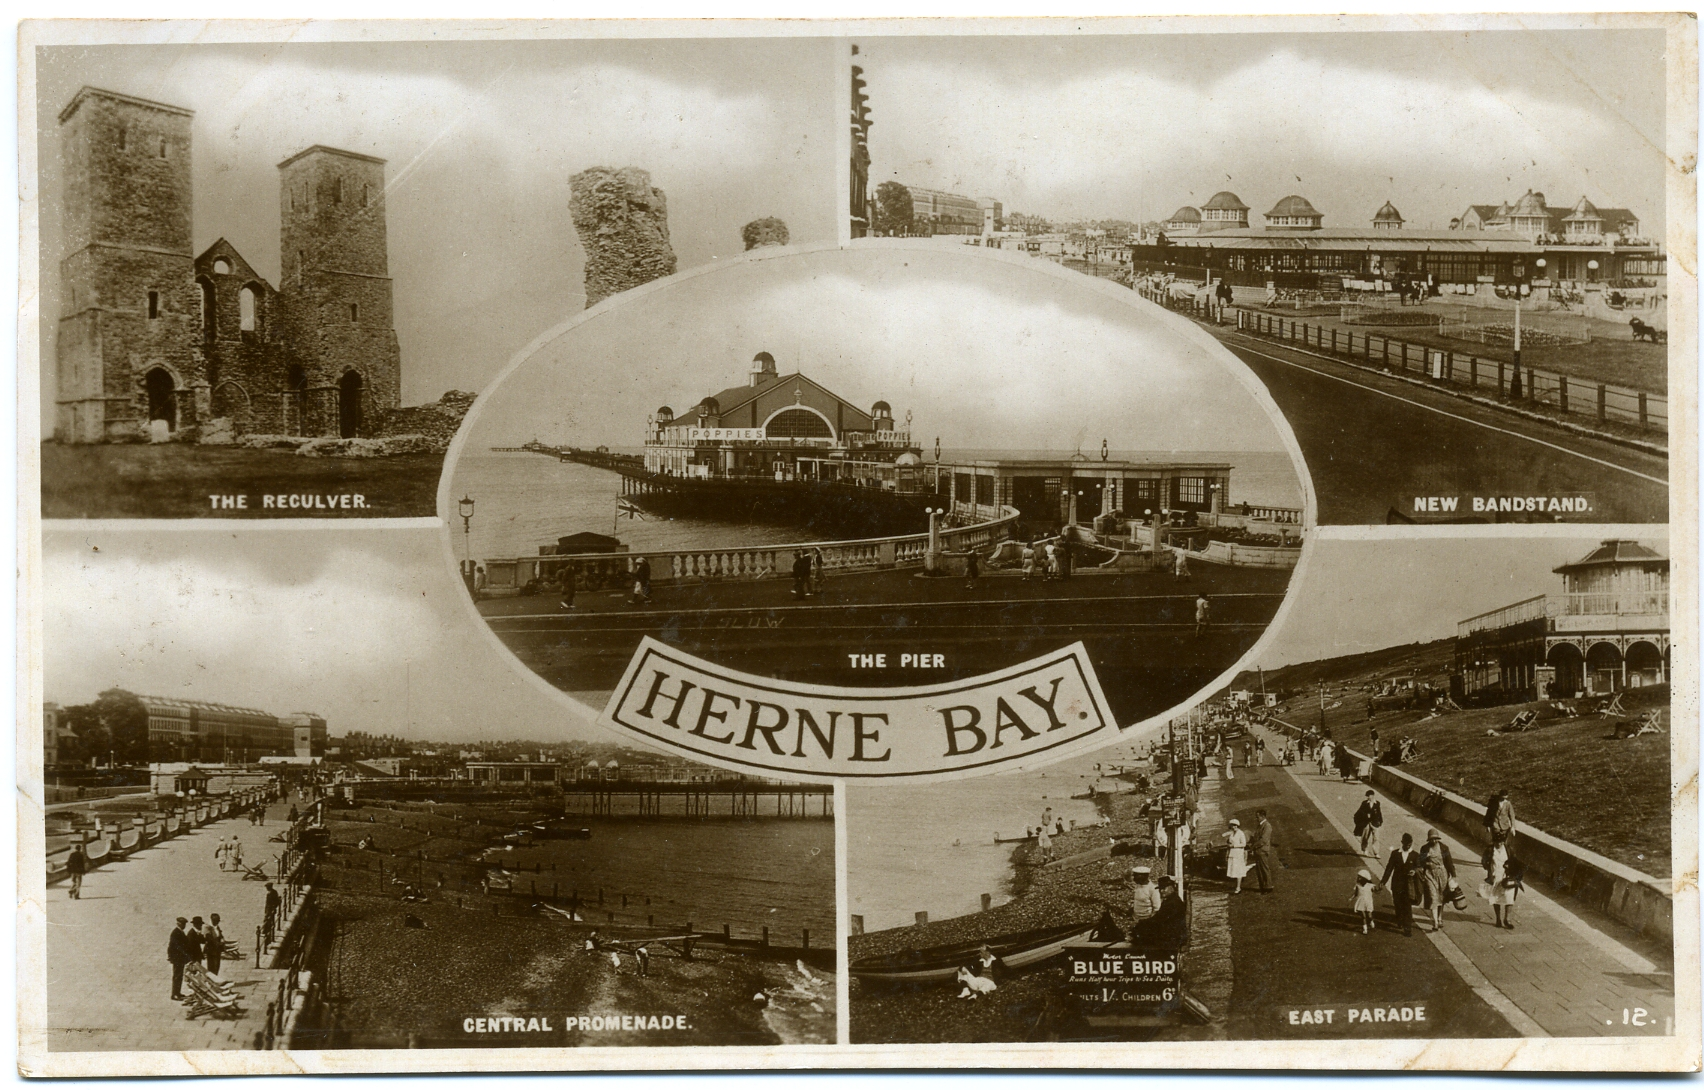 Dating herne bay